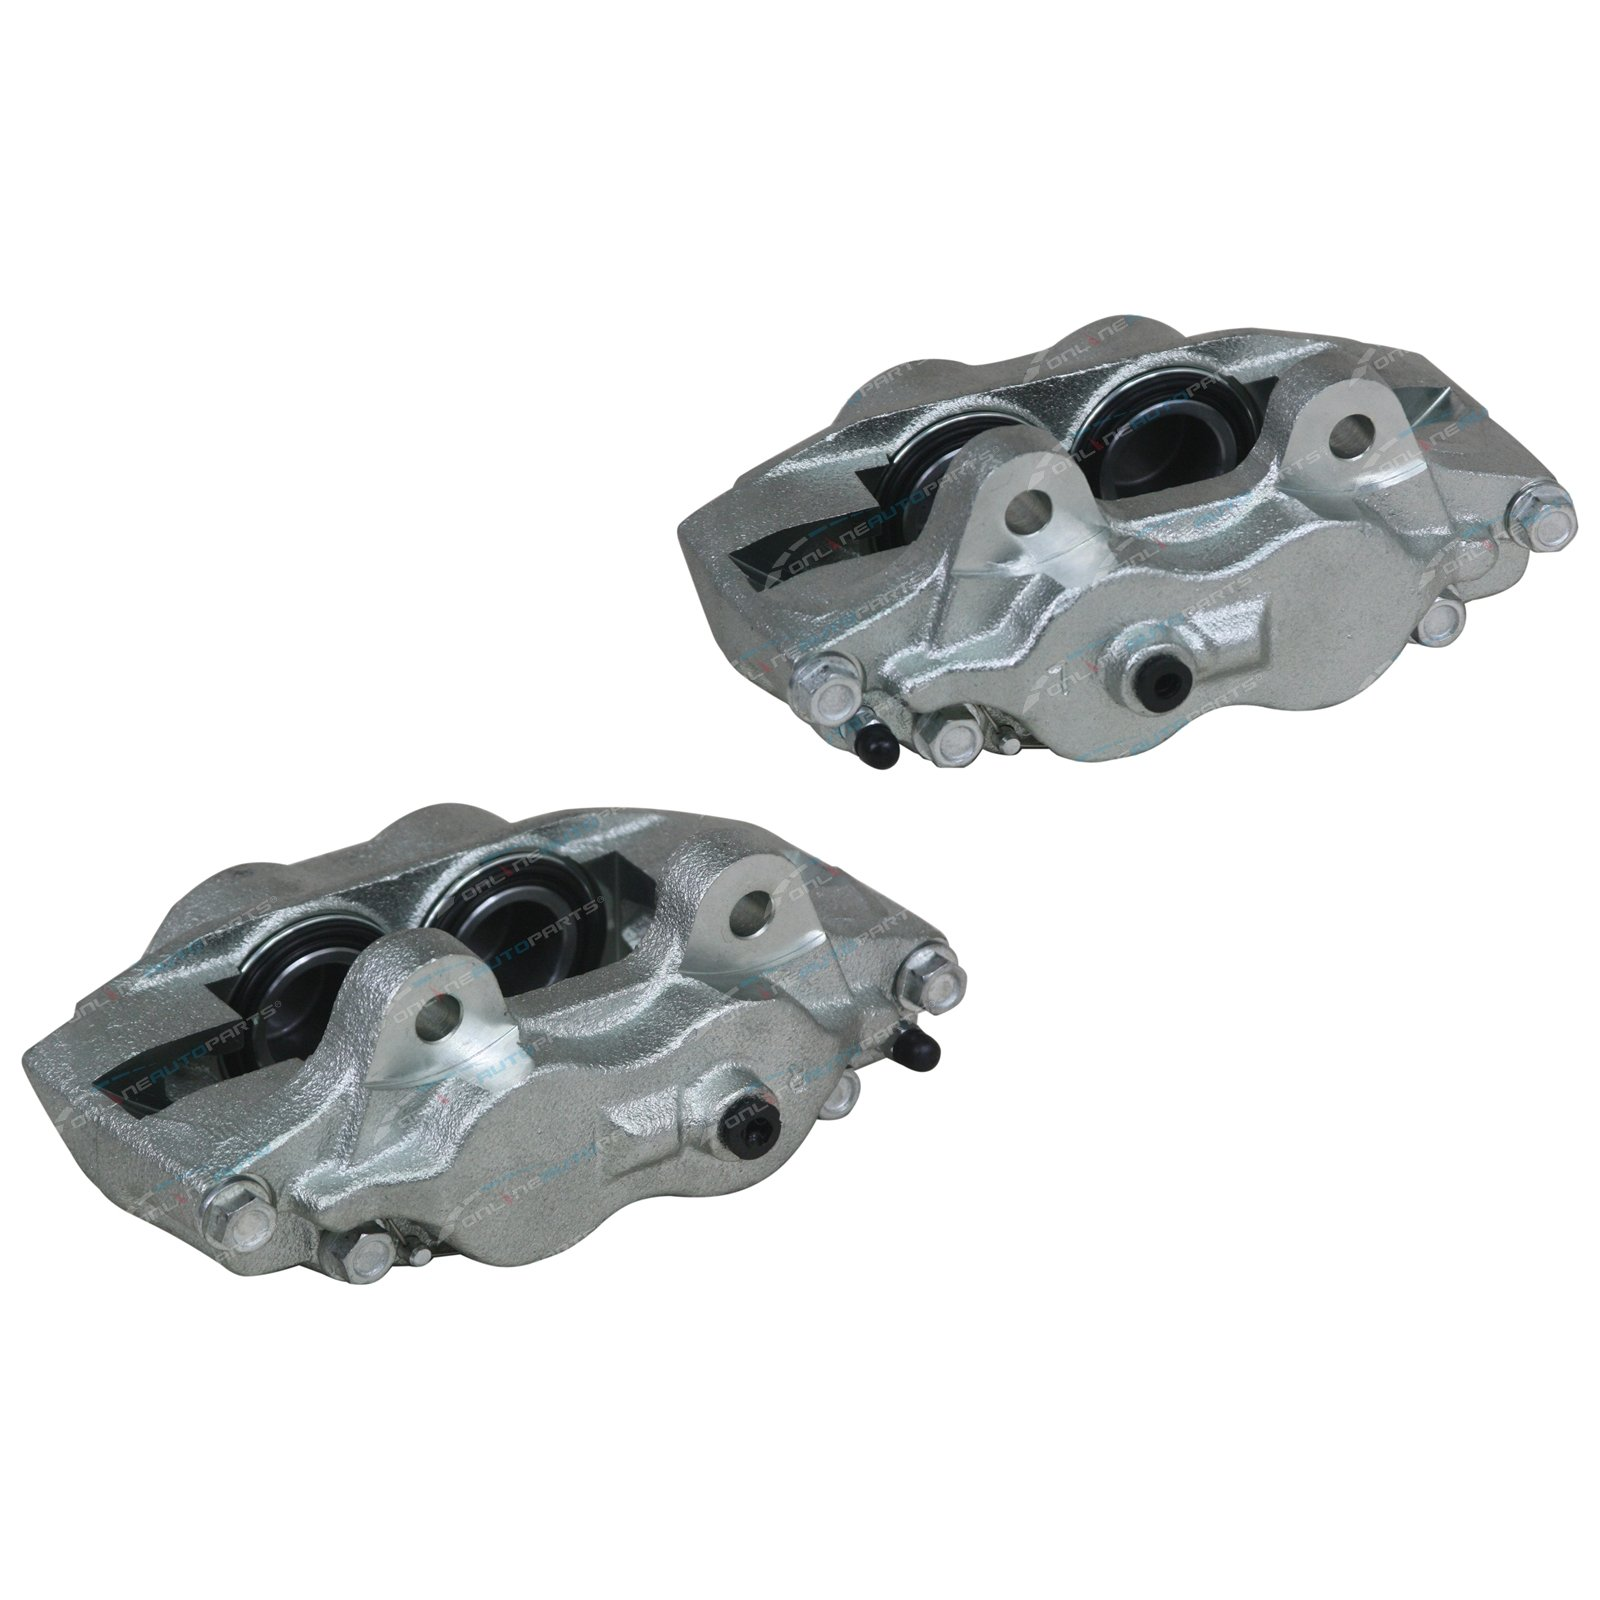 2 Front Brake Calipers Suits Toyota Surf 4runner Hilux Rn105 Rn106 Rn110 Rn130 Vzn130 Cal35080 Onlineautoparts